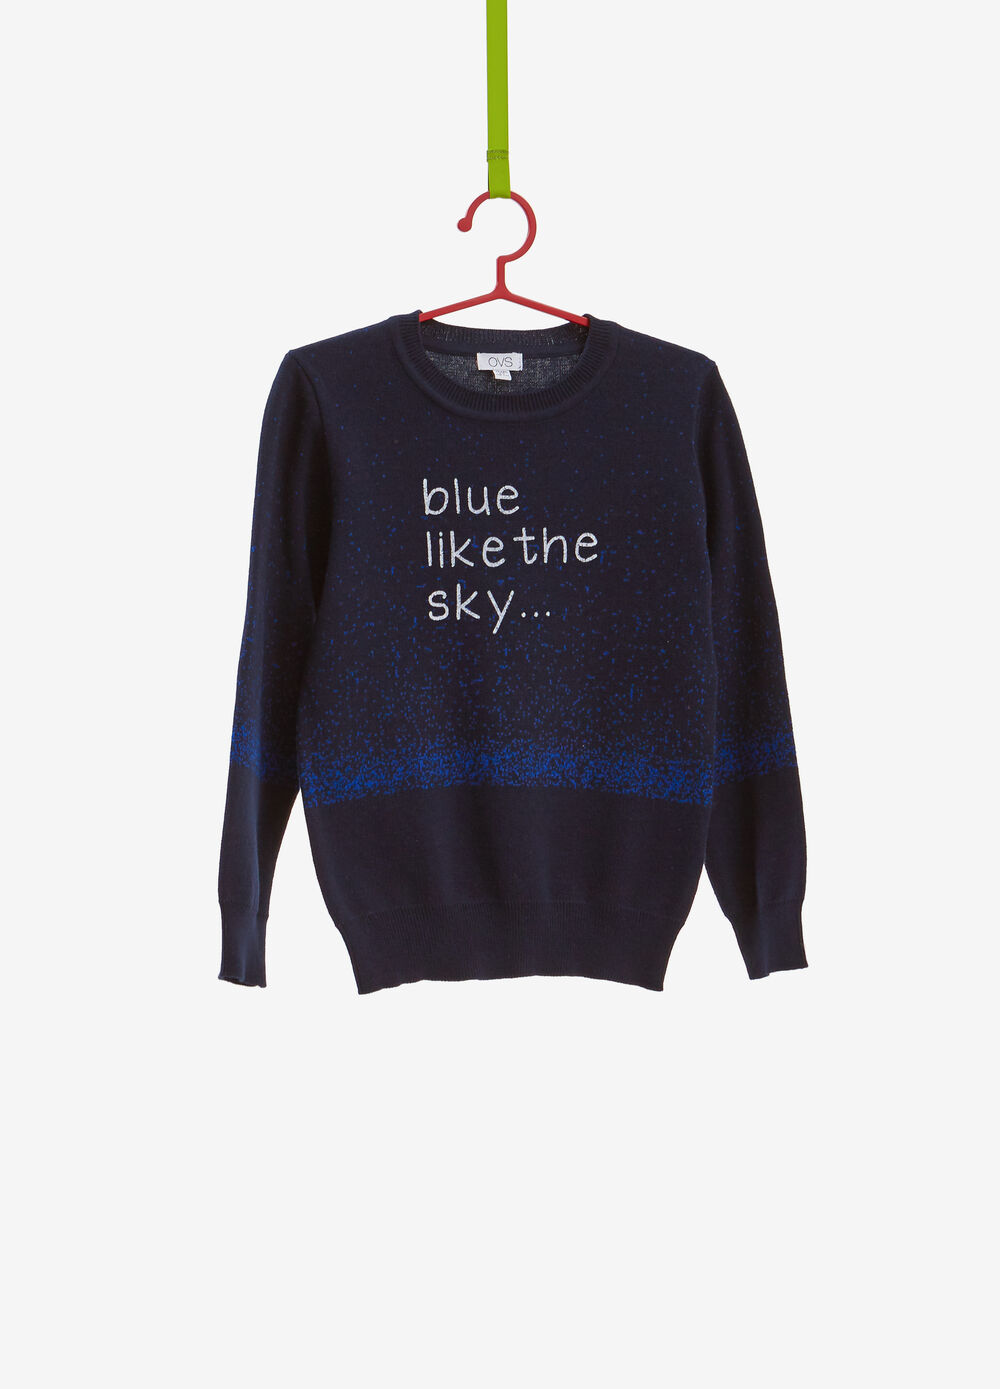 Pullover with degradé printed lettering